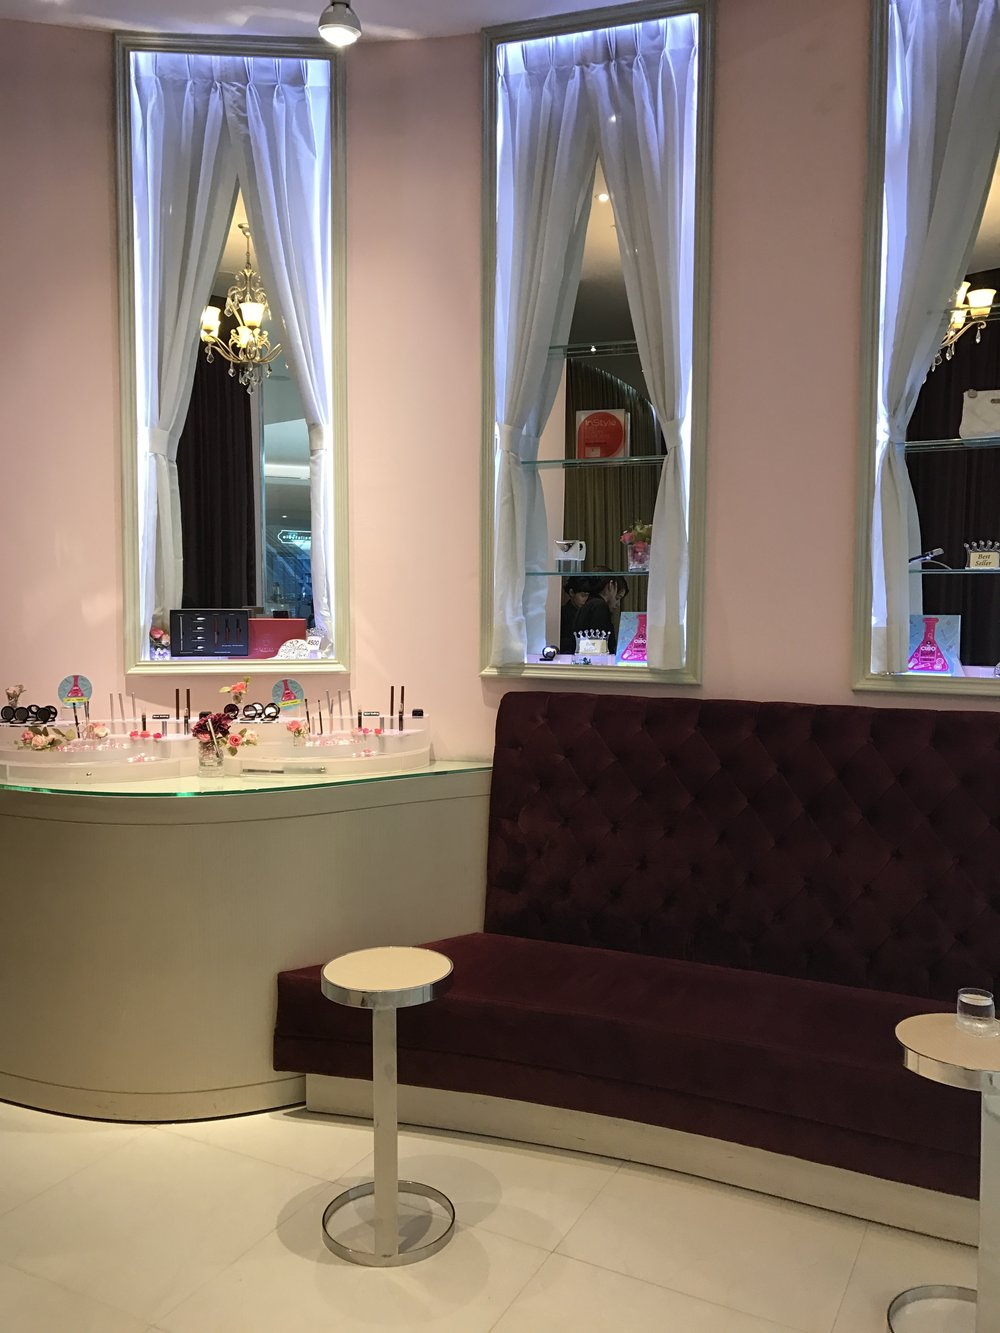 Plush purple sofas in the waiting area and a selection of their make-up products on the counter